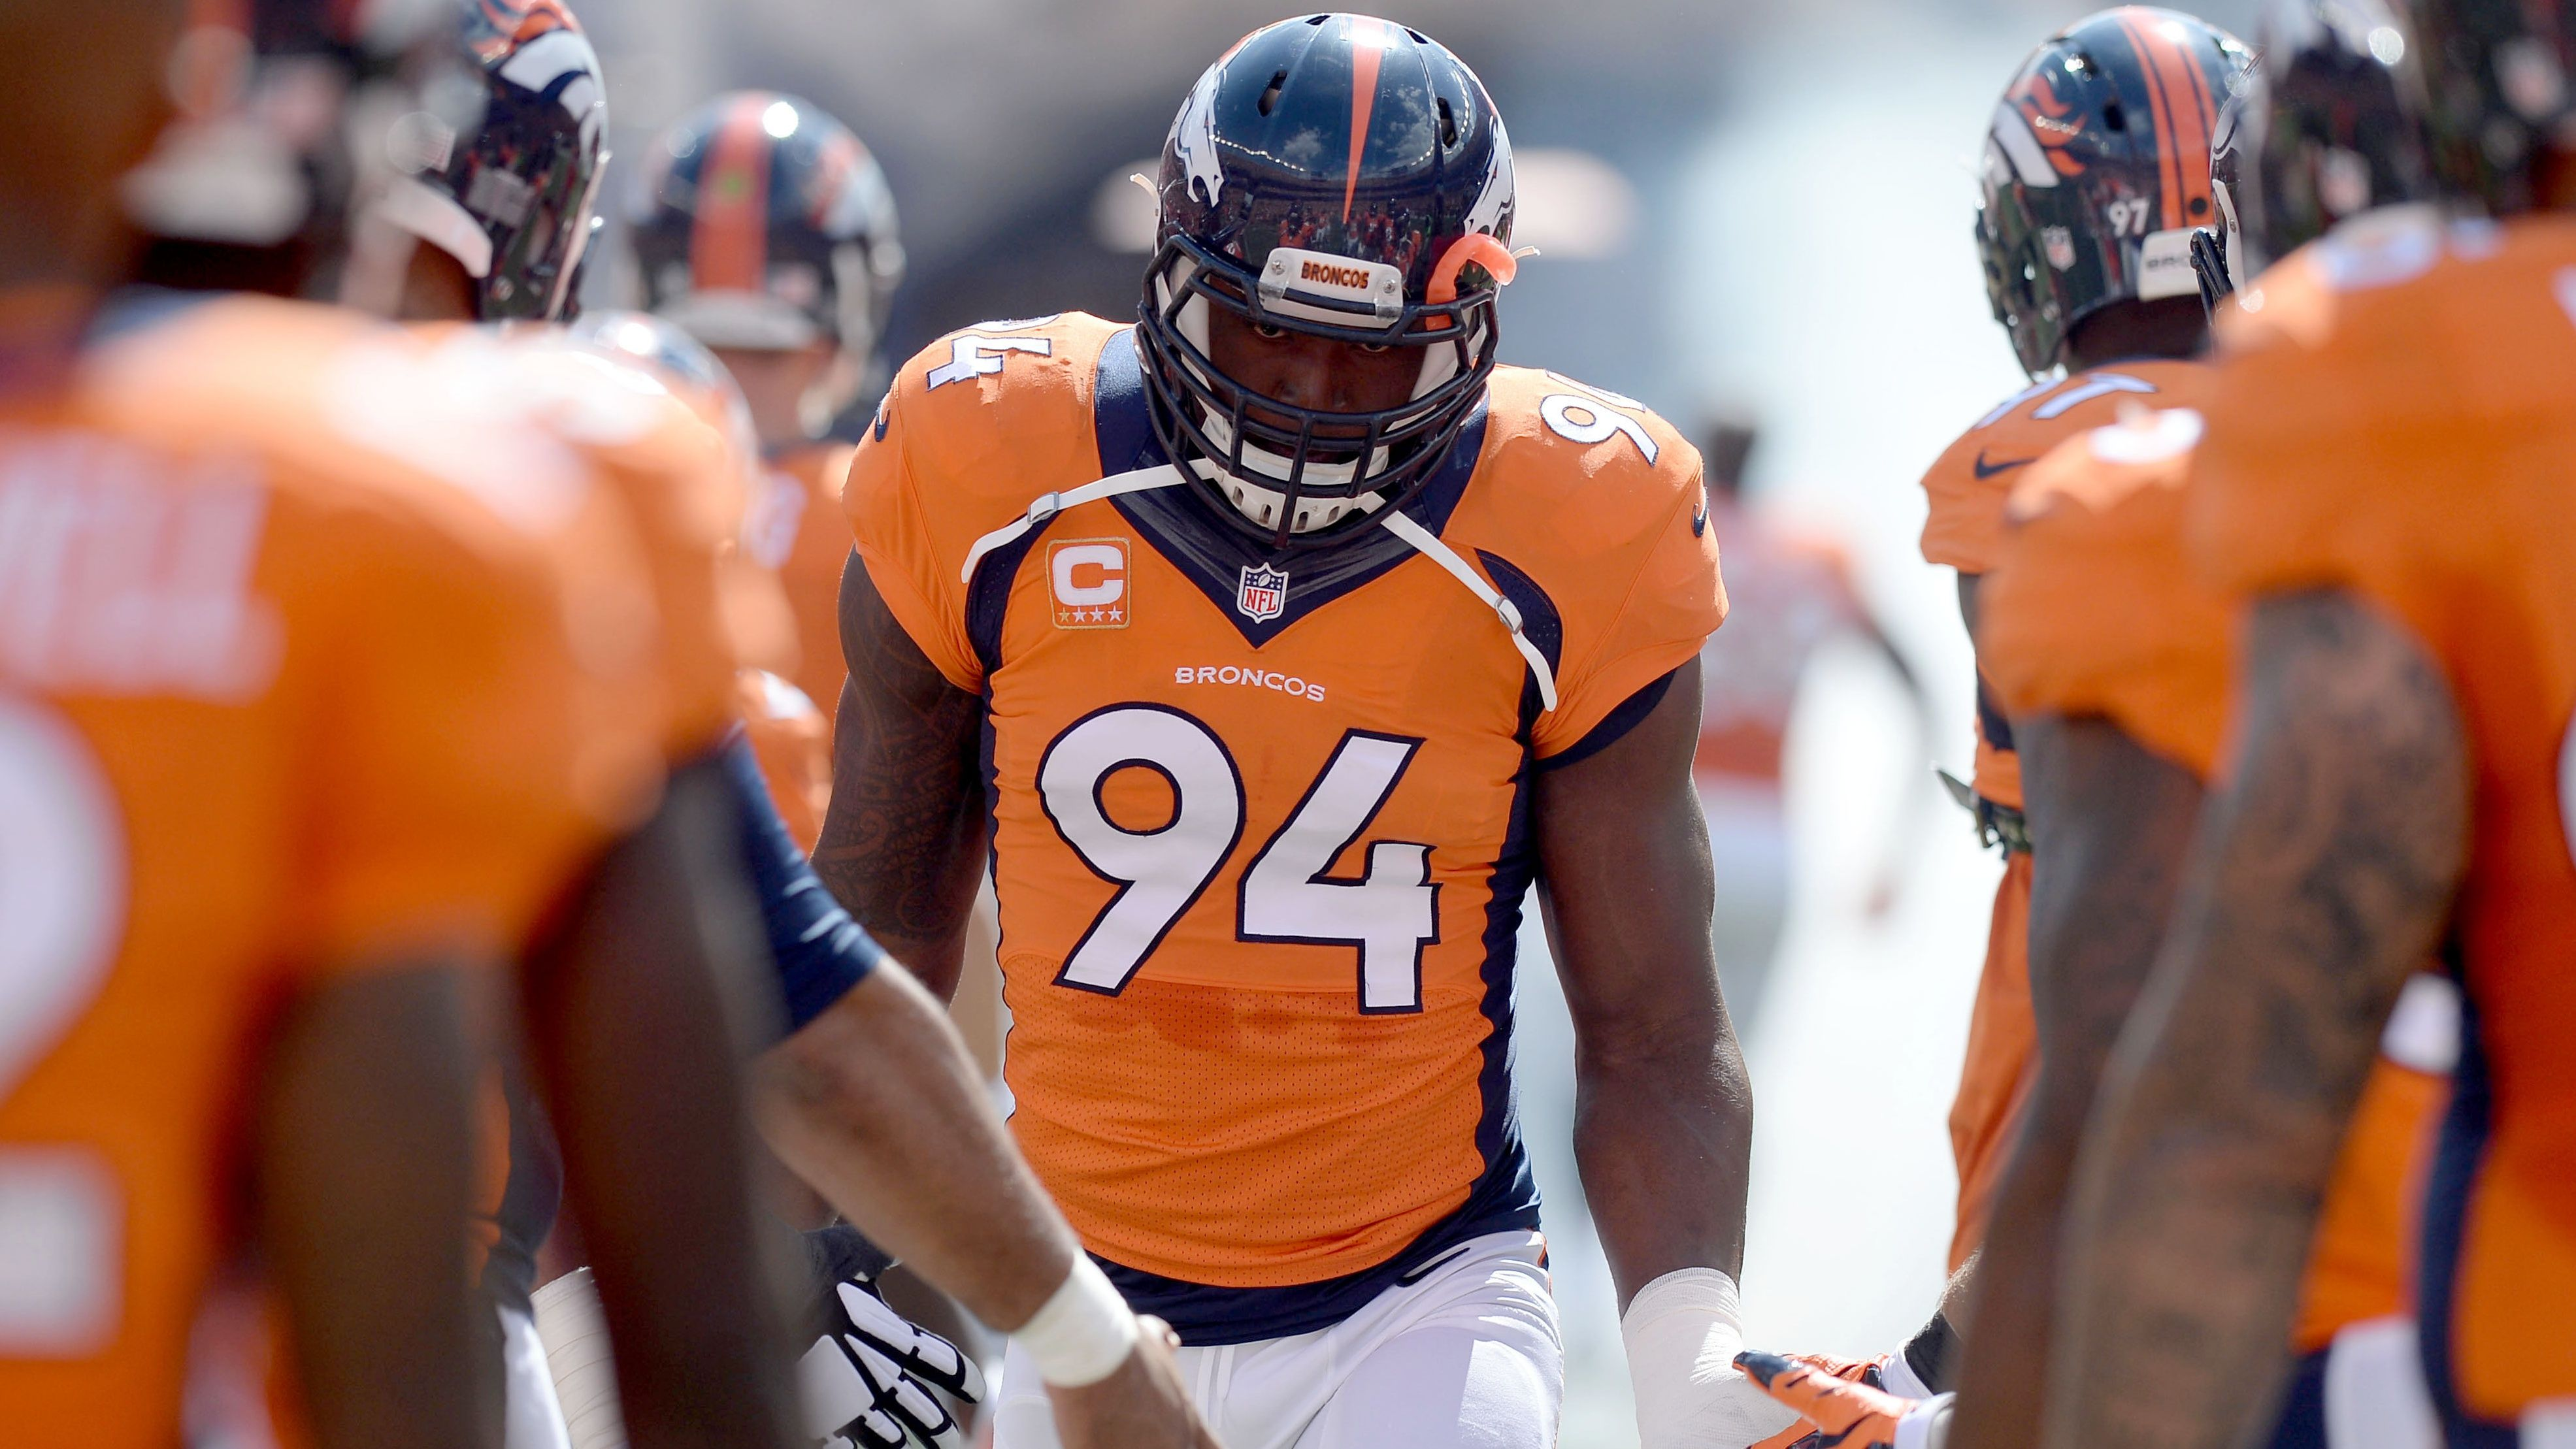 DeMarcus-Ware-Ron-Chenoy-USA-TODAY-Sports-Cropped.jpg (3942×2218)